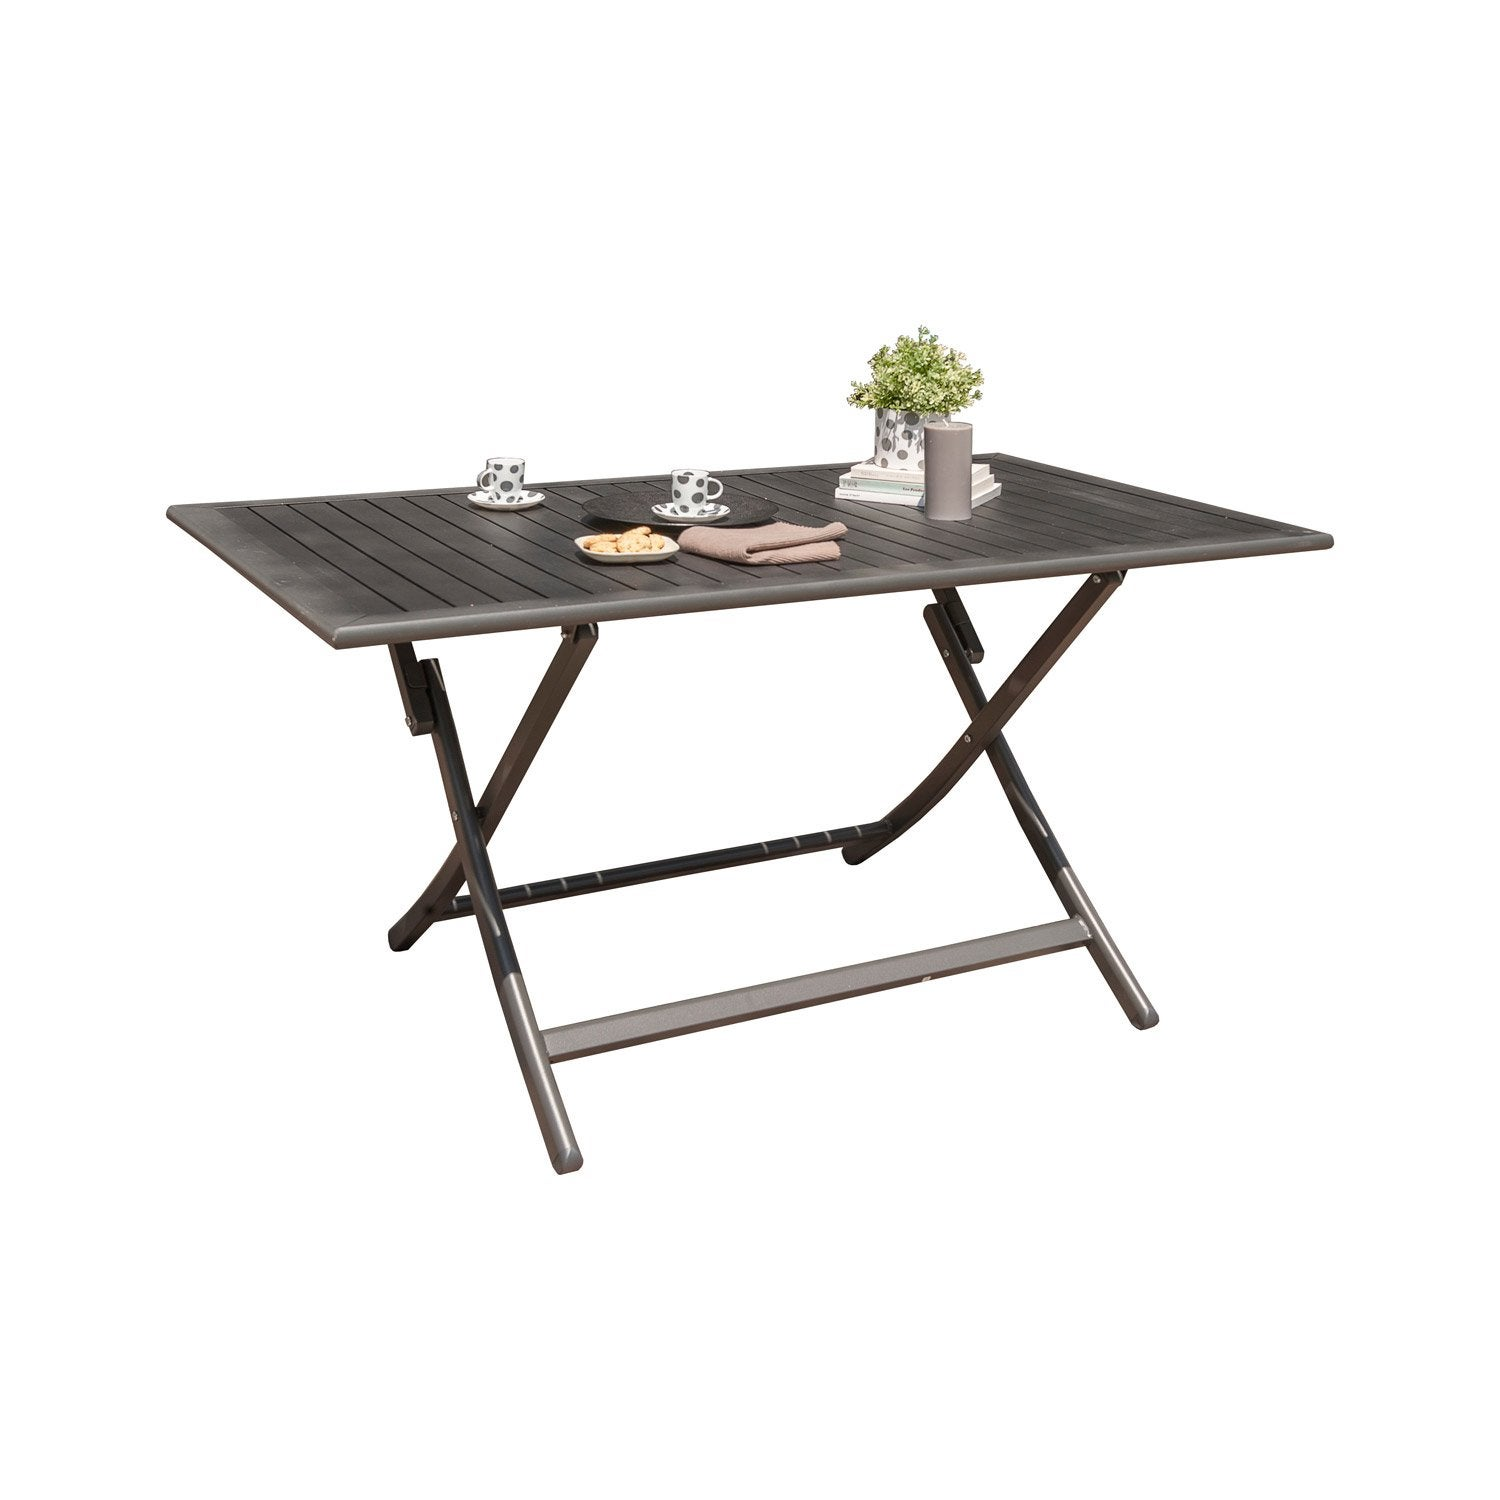 table de jardin miami rectangulaire gris anthracite 4. Black Bedroom Furniture Sets. Home Design Ideas